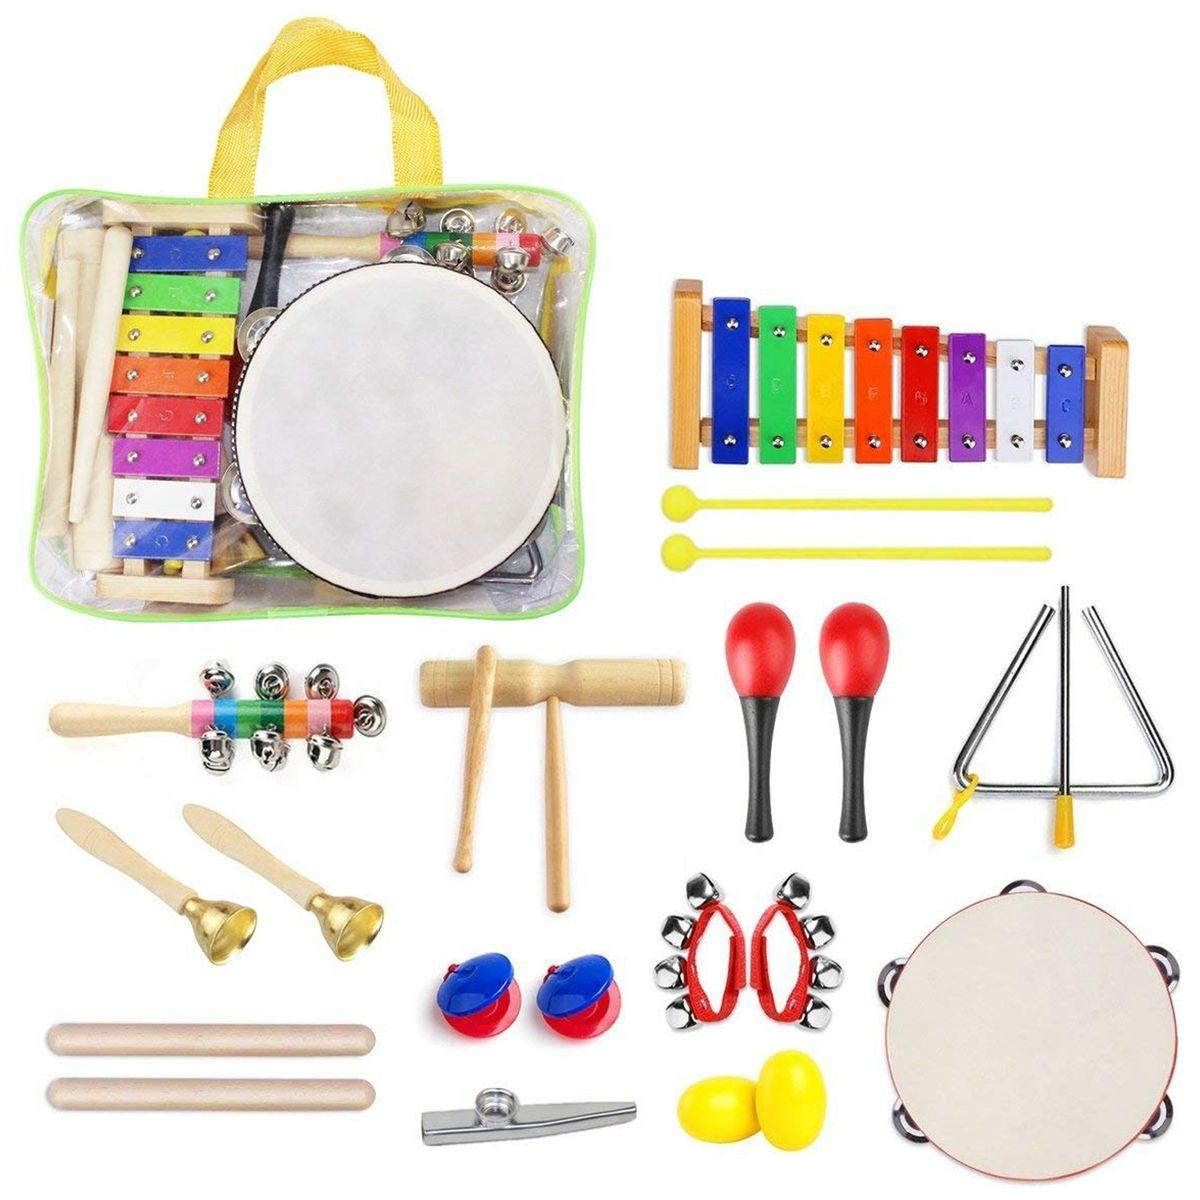 Preschool Toddler Kids Musical Instruments Percussion Toy Rhythm Band Set